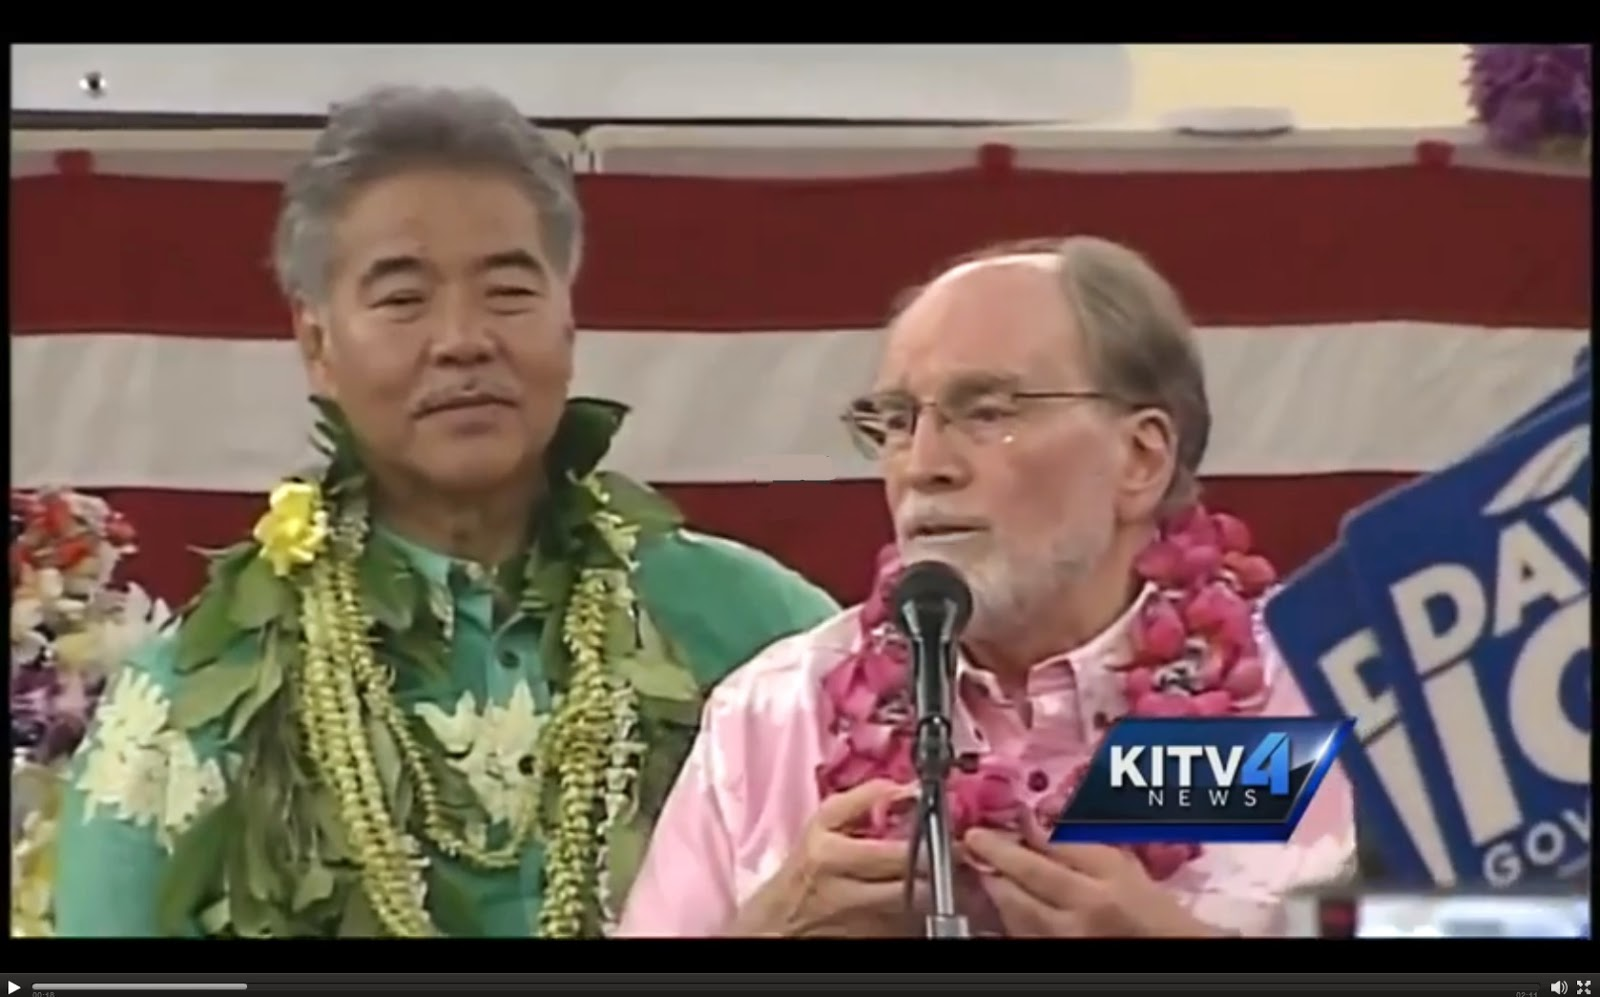 screen shot -- KITV4 news